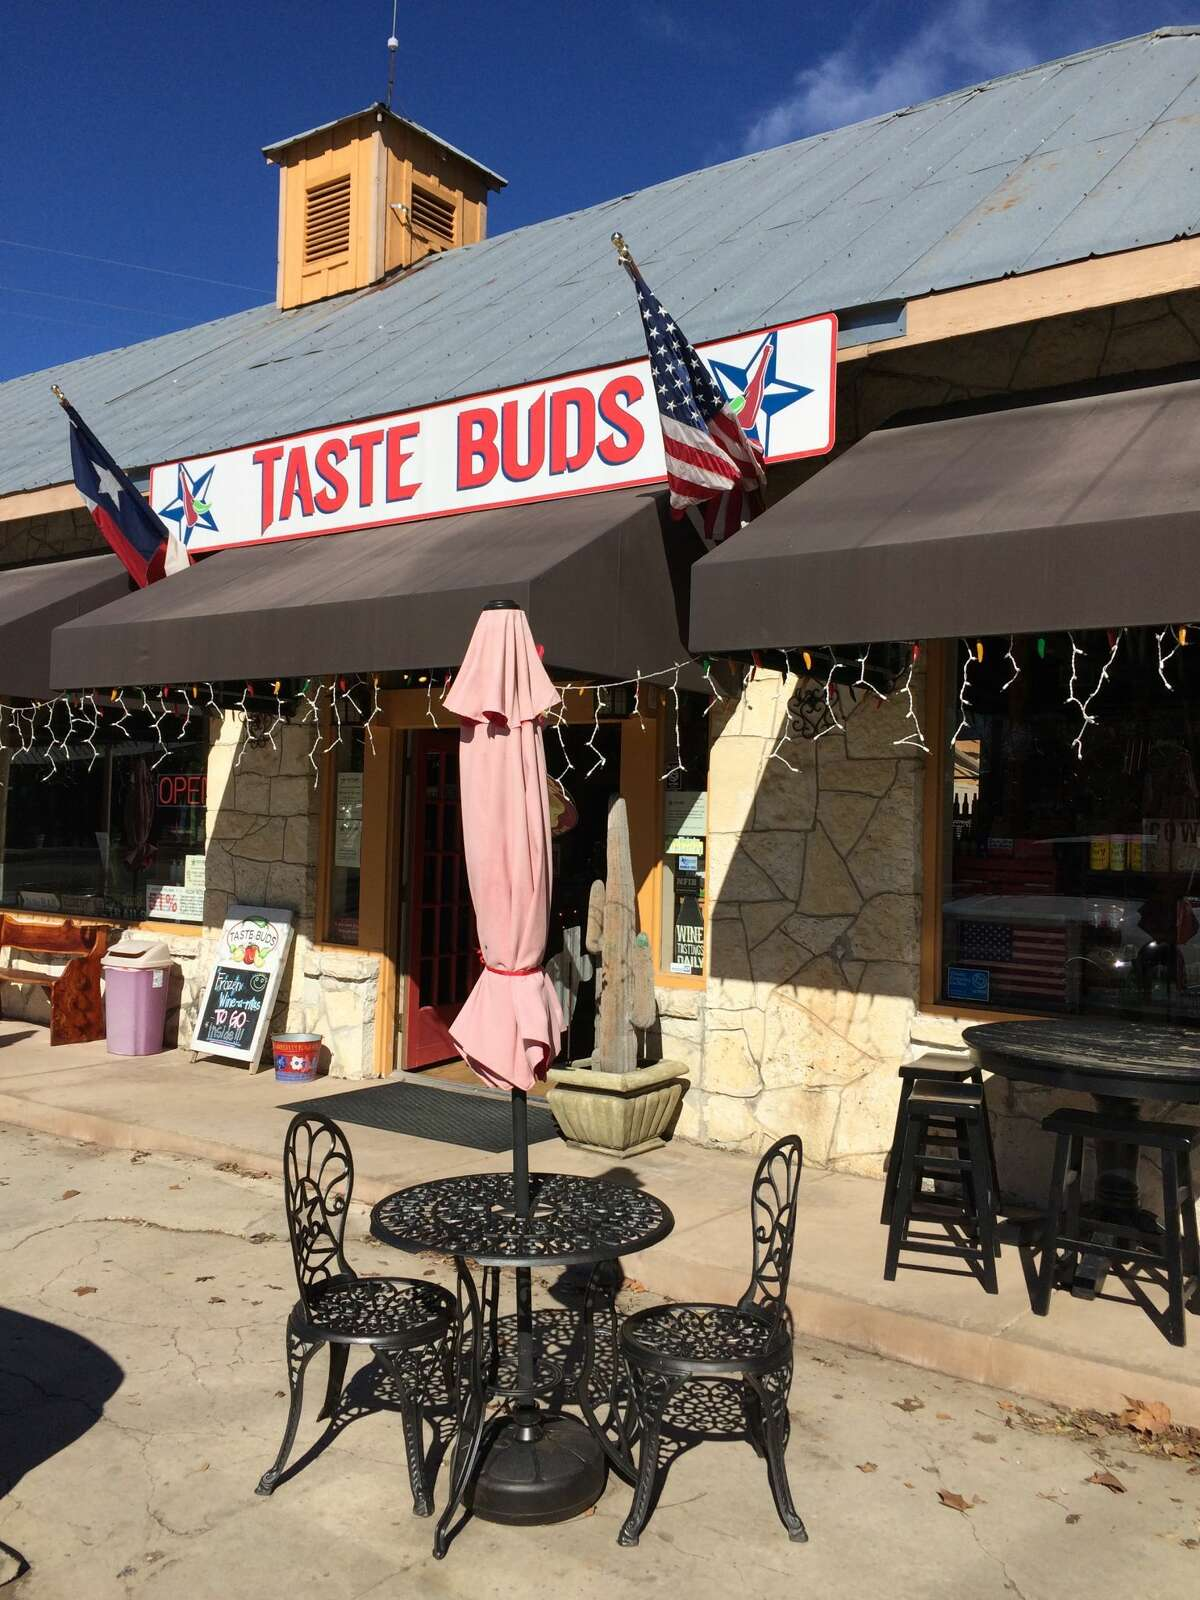 Taste Buds is great - and delicious - starting point. Here, try seemingly endless local salsa, wine, and cheese; beware of the frozen adult beverages, they're deceptively strong.